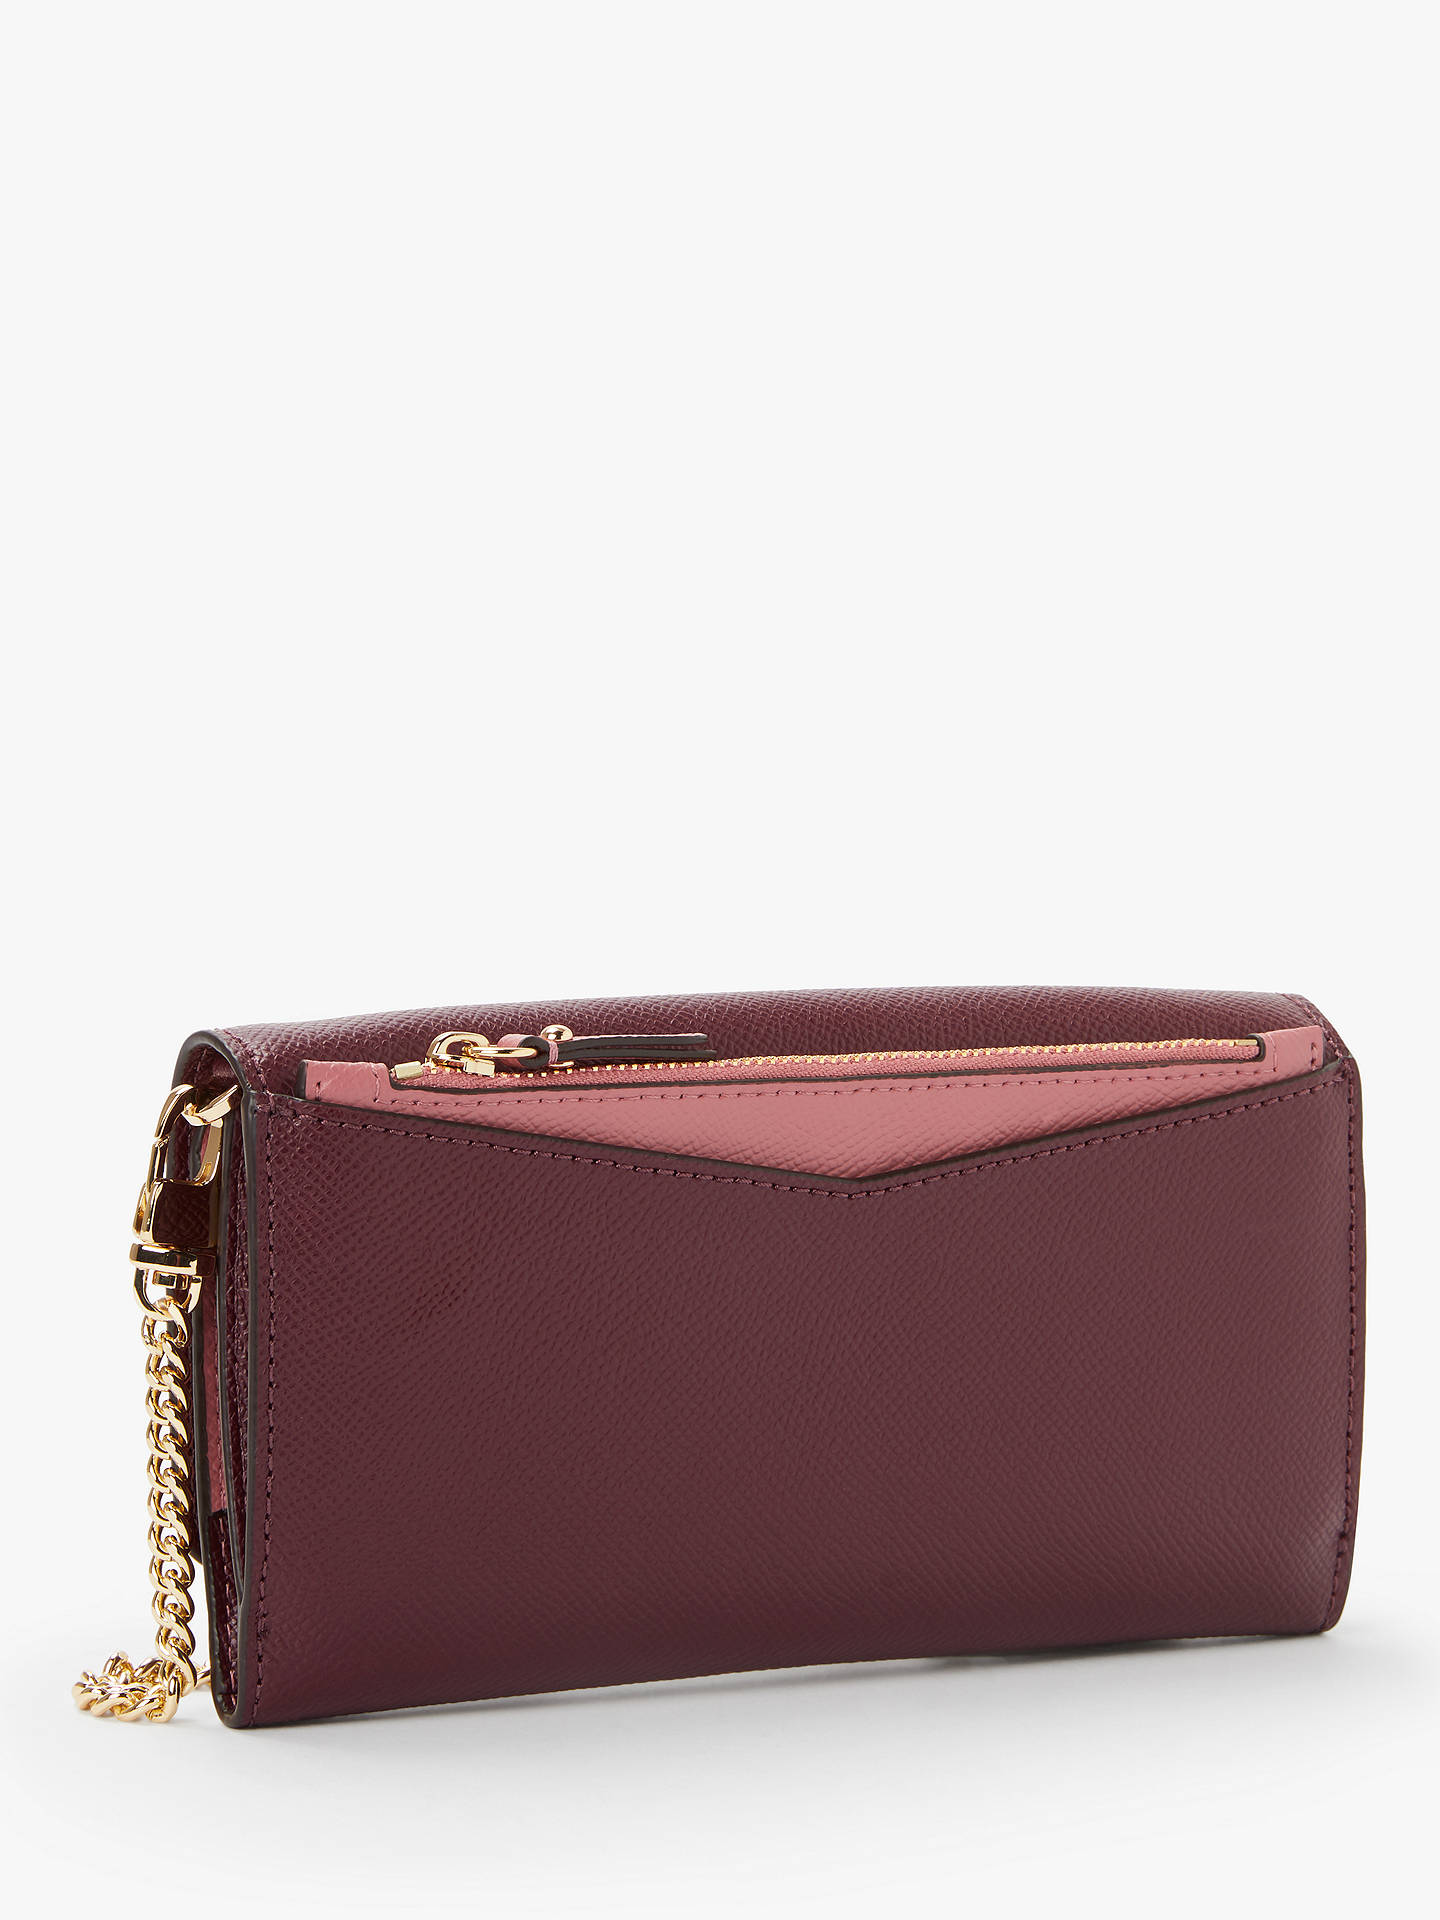 ff455b809d74d6 ... Buy MICHAEL Michael Kors Crossbodies Leather Wallet On A Chain Clutch  Bag, Oxblood Online at ...